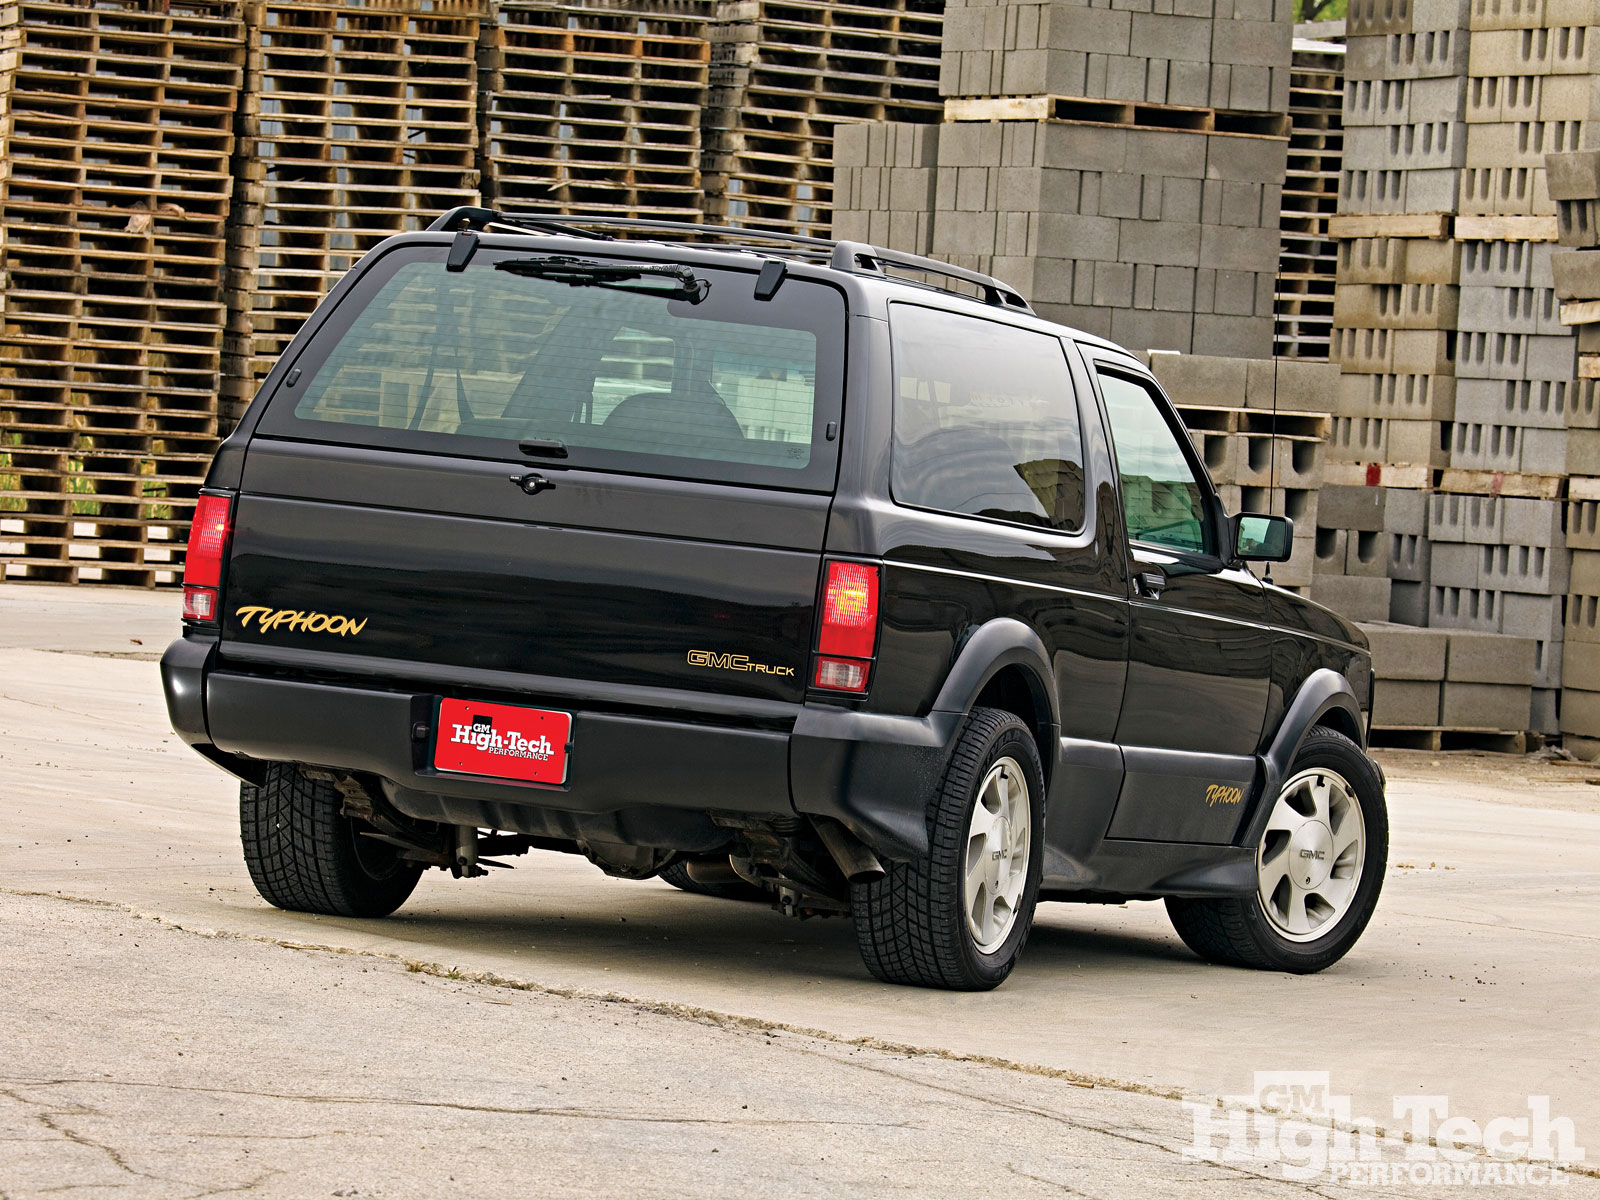 Gmc typhoon photo - 3